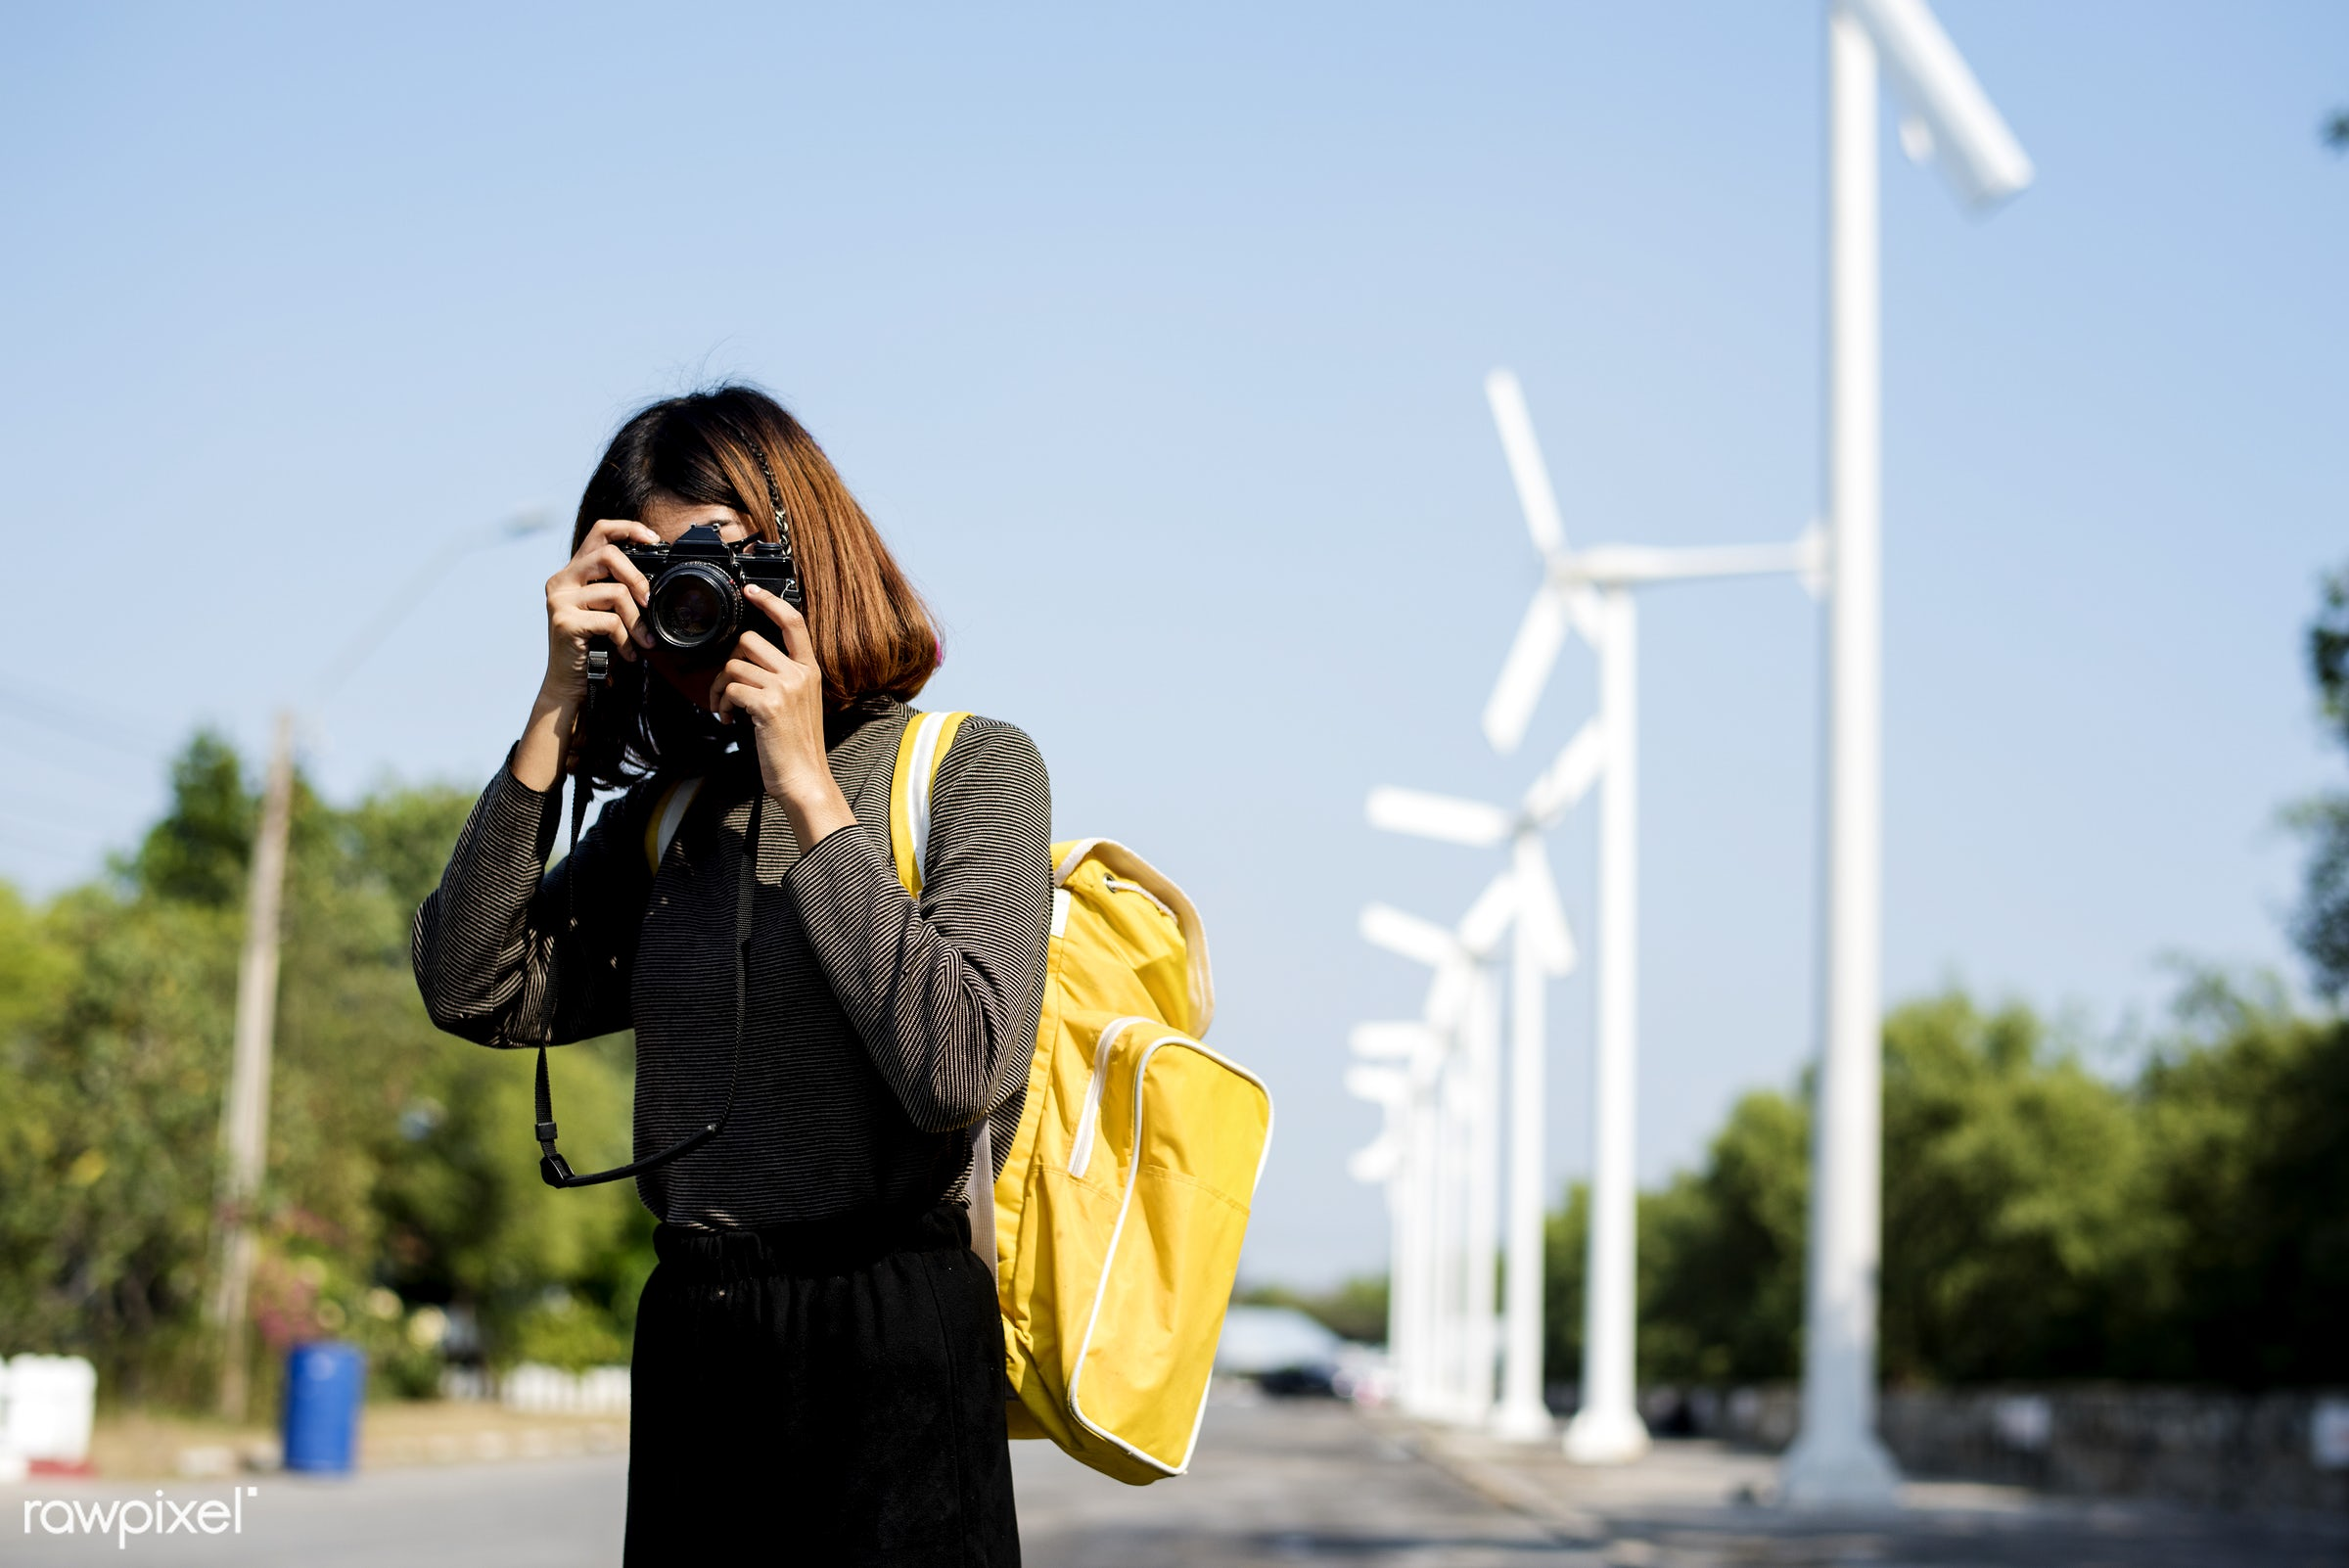 girl, woman, photo, camera, picture, windmill, field, alone, outdoors, photography, photographer, hobby, person